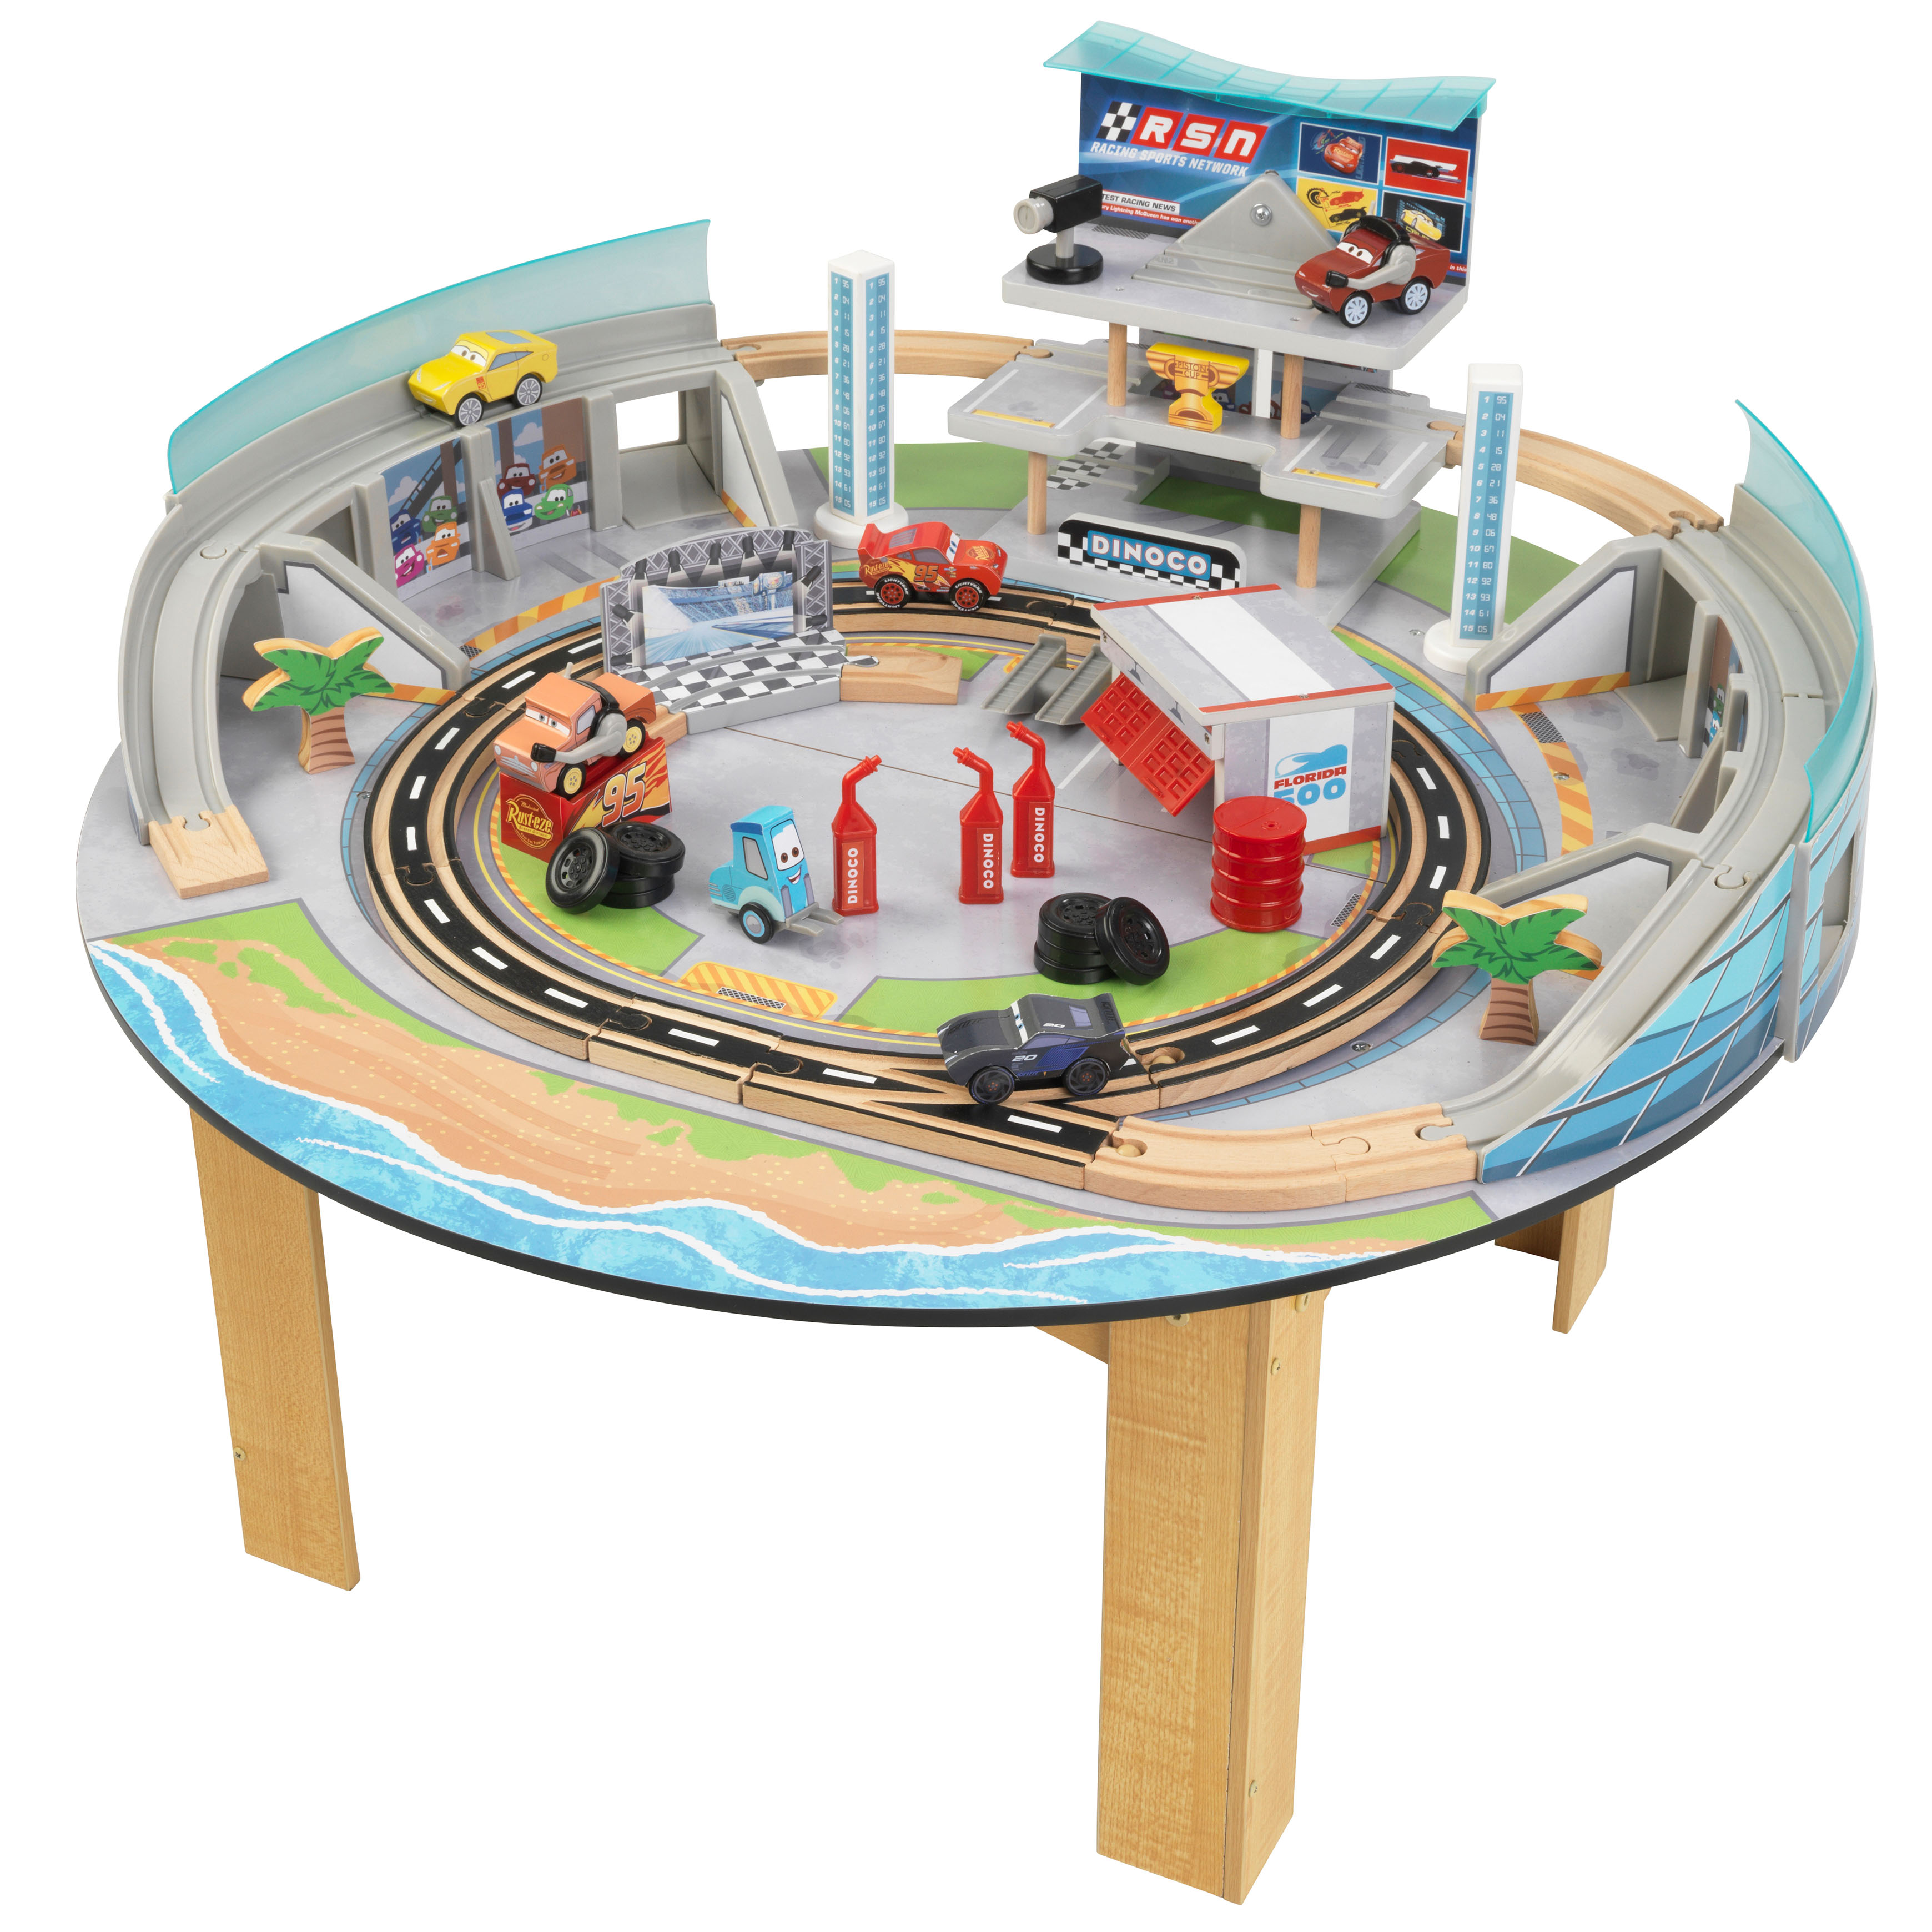 If You Have A Cars 3 Fan In Your List Will Not Want To Miss This Next Deal Right Now At Can Pick Up Florida Racetrack Table